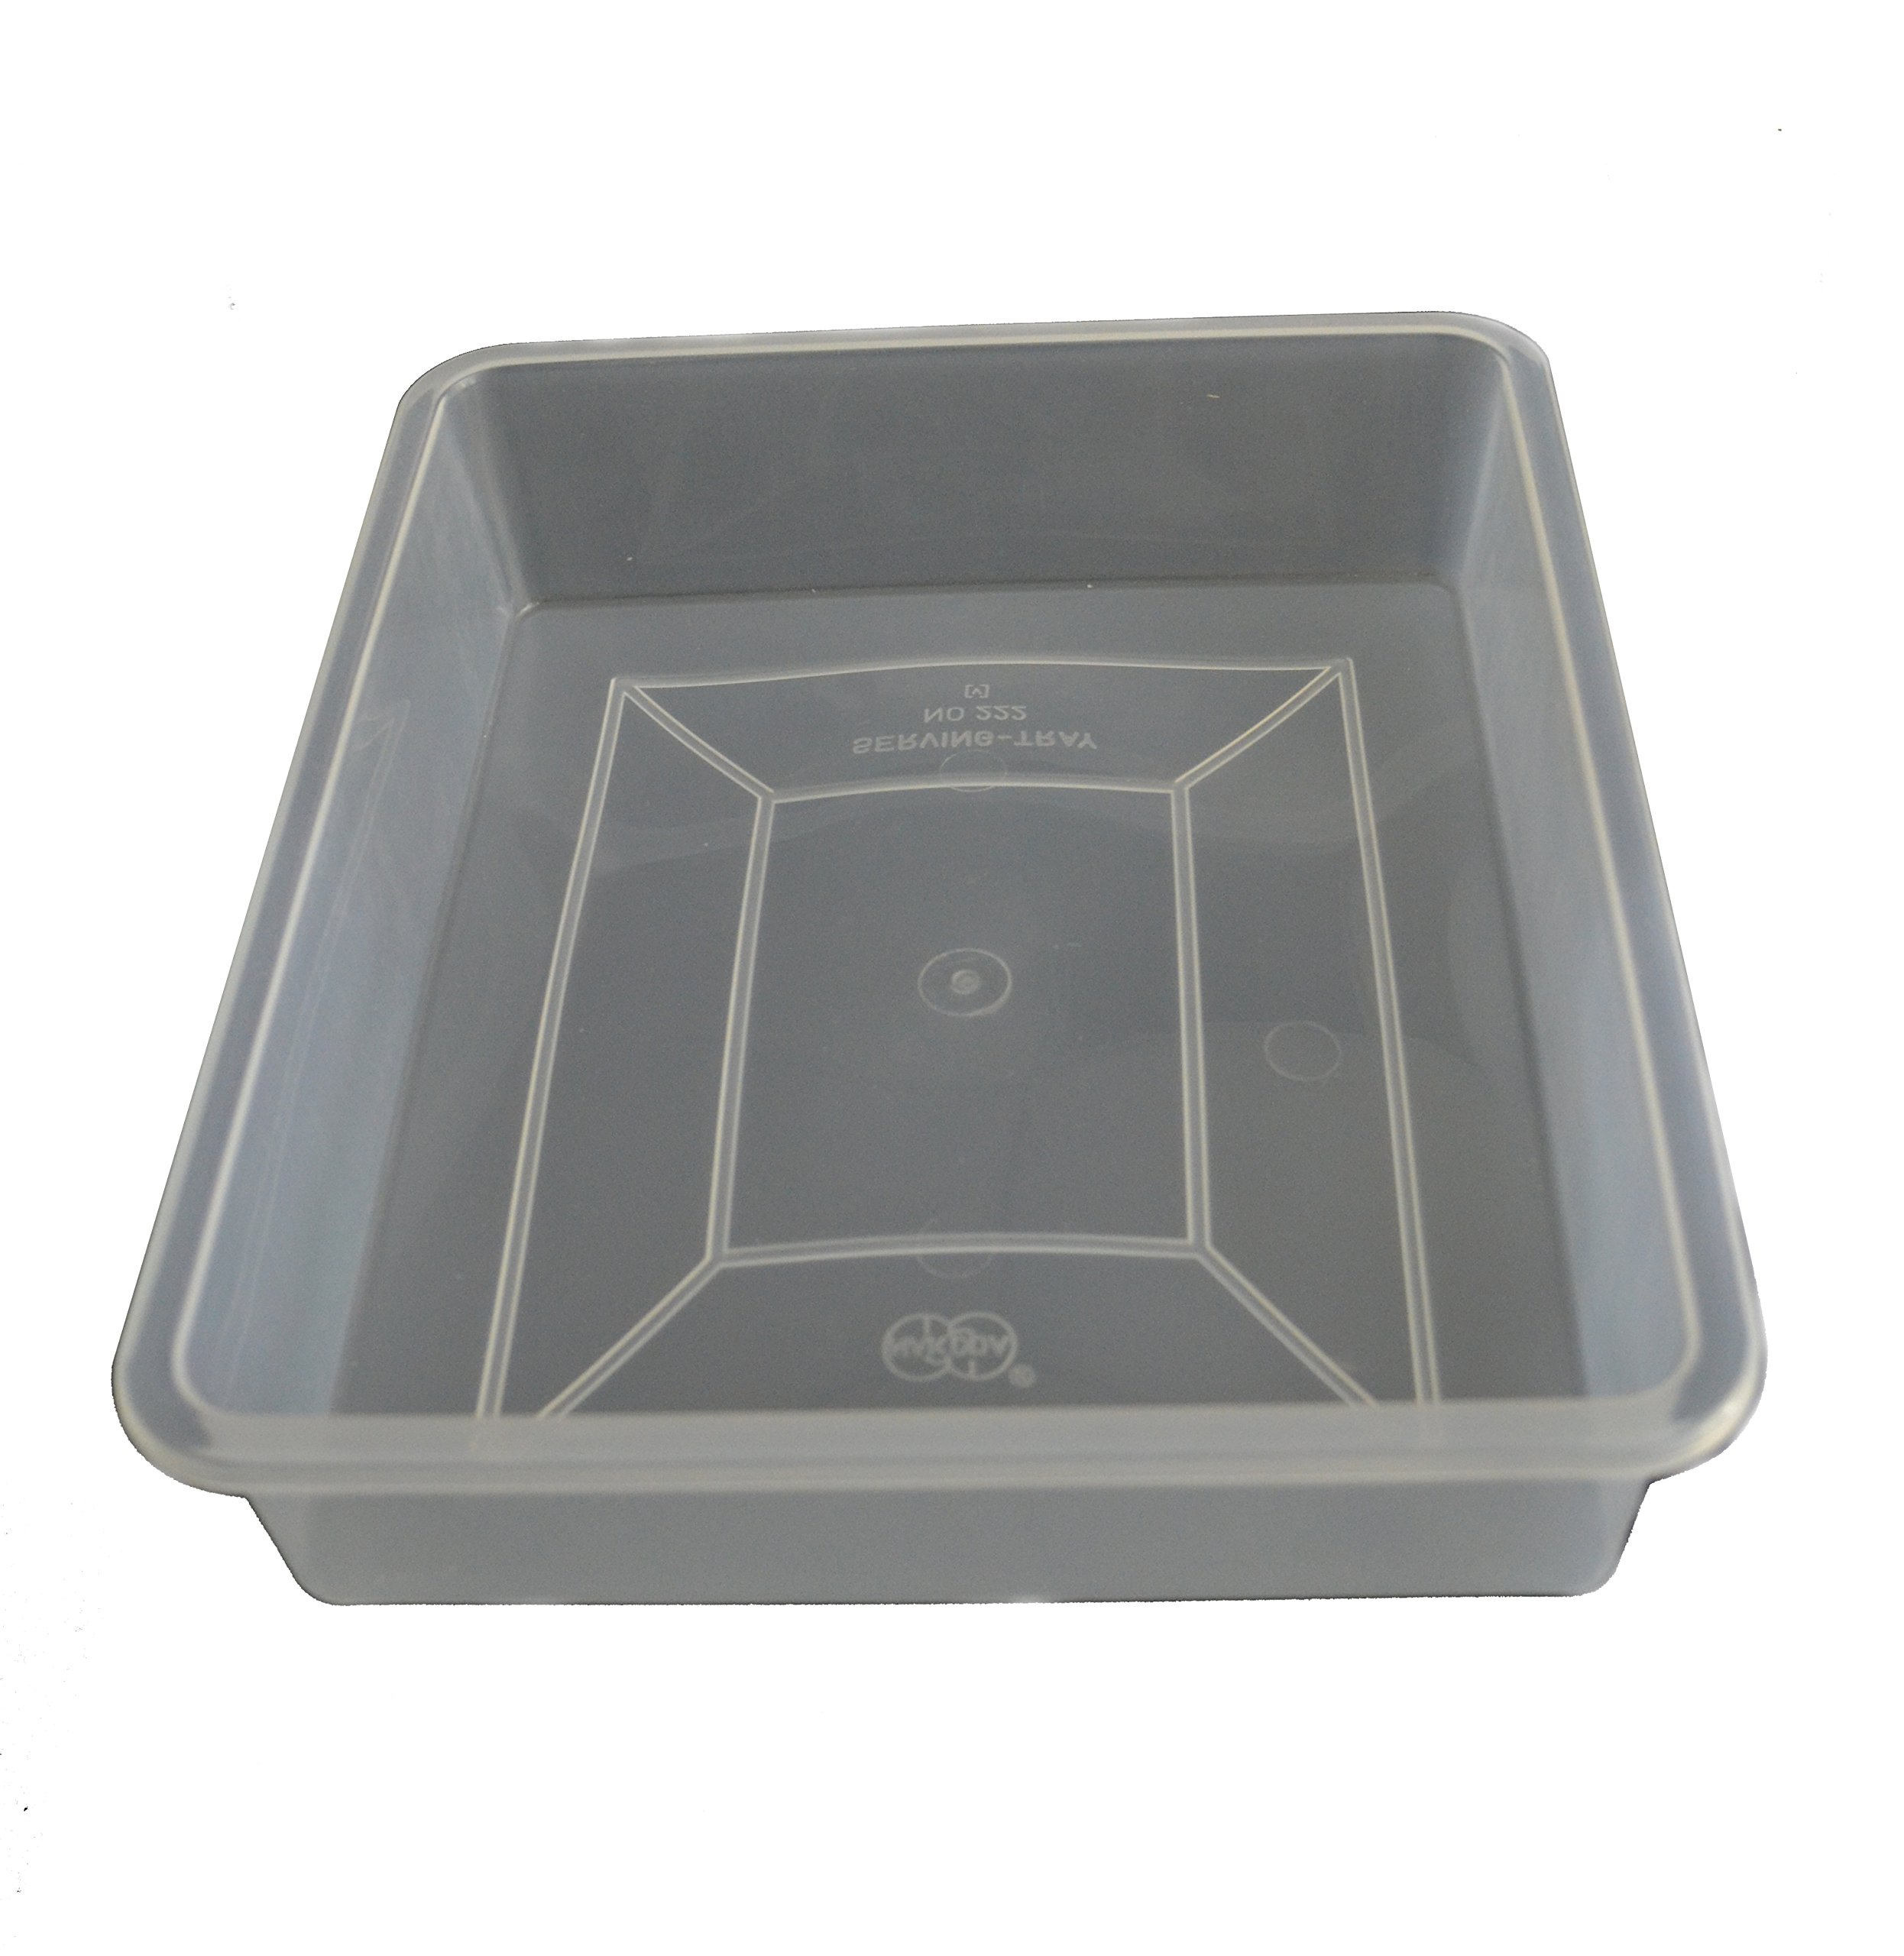 Eisco Labs Plastic Dissection Tray, 22.5 X 25 cm by EISCO